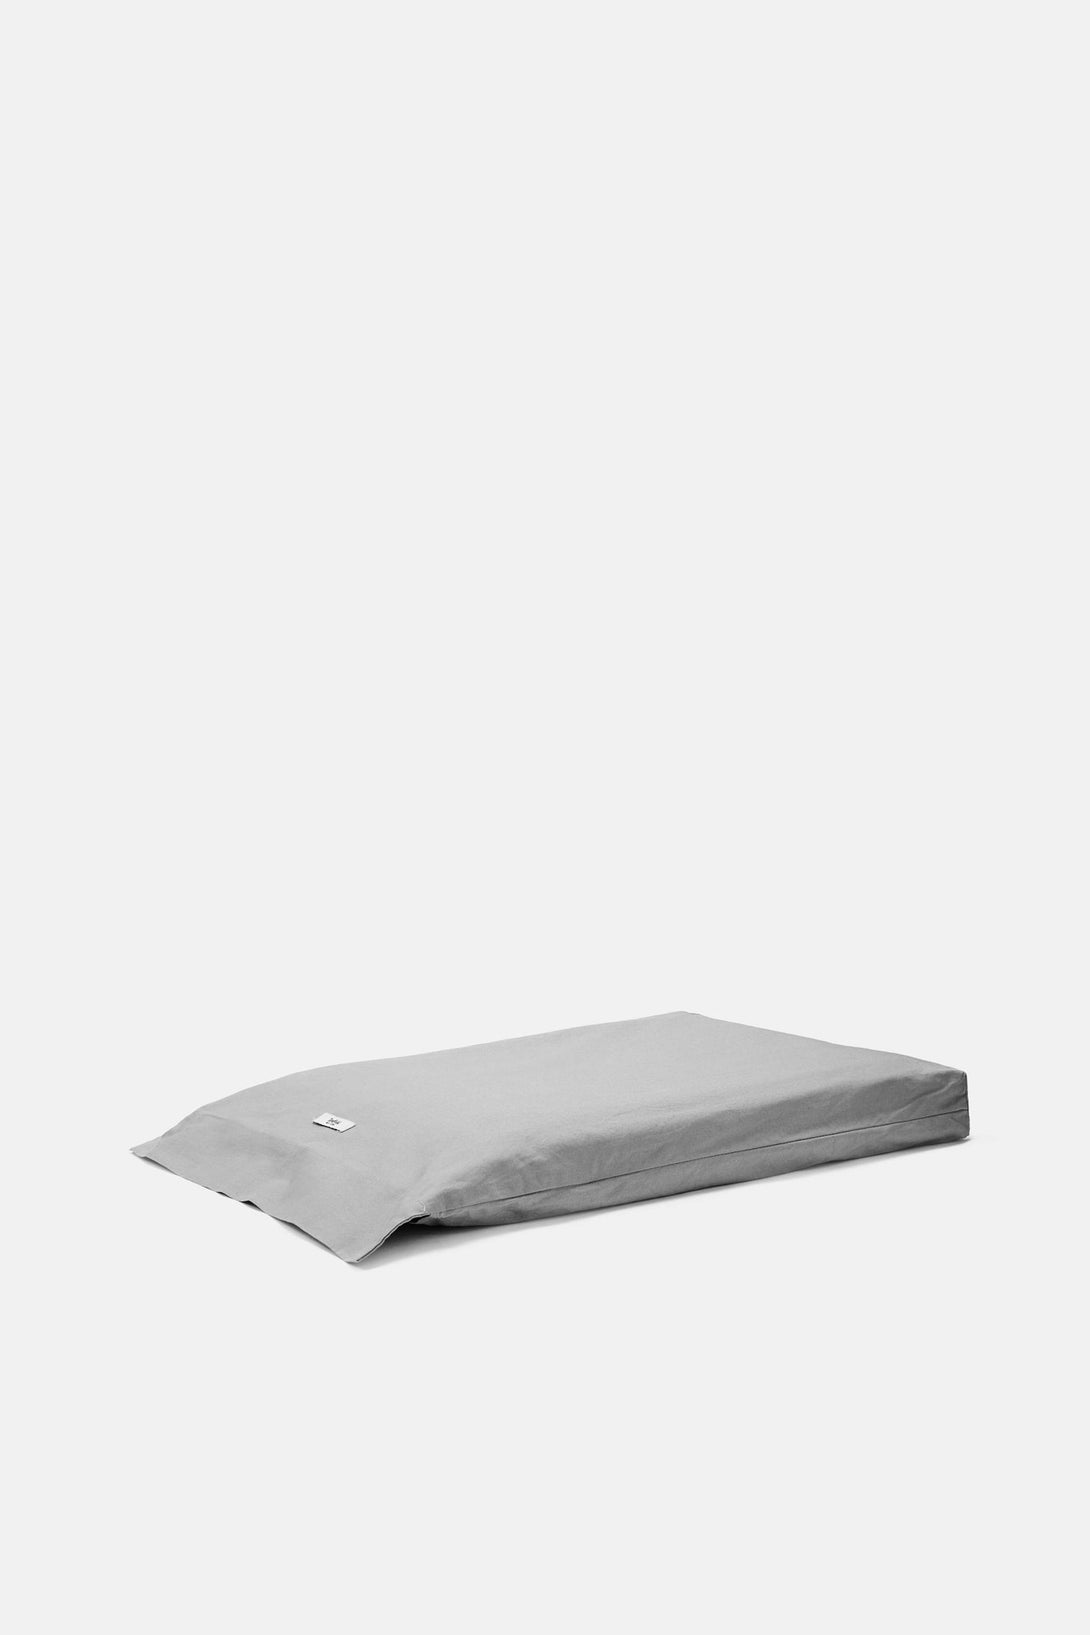 Washed Percale Full/Queen Flat Sheet - Graphite